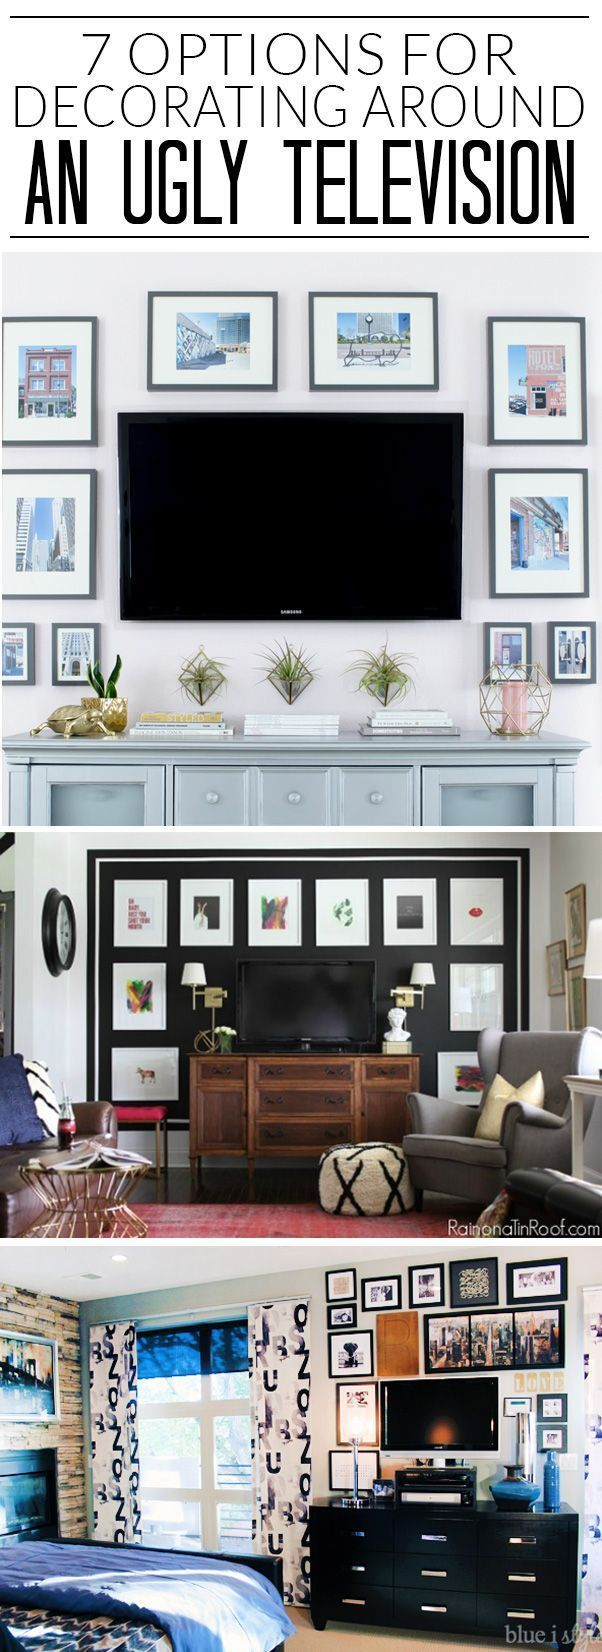 best 25+ flat screen tvs ideas on pinterest | flat screen, tvs for